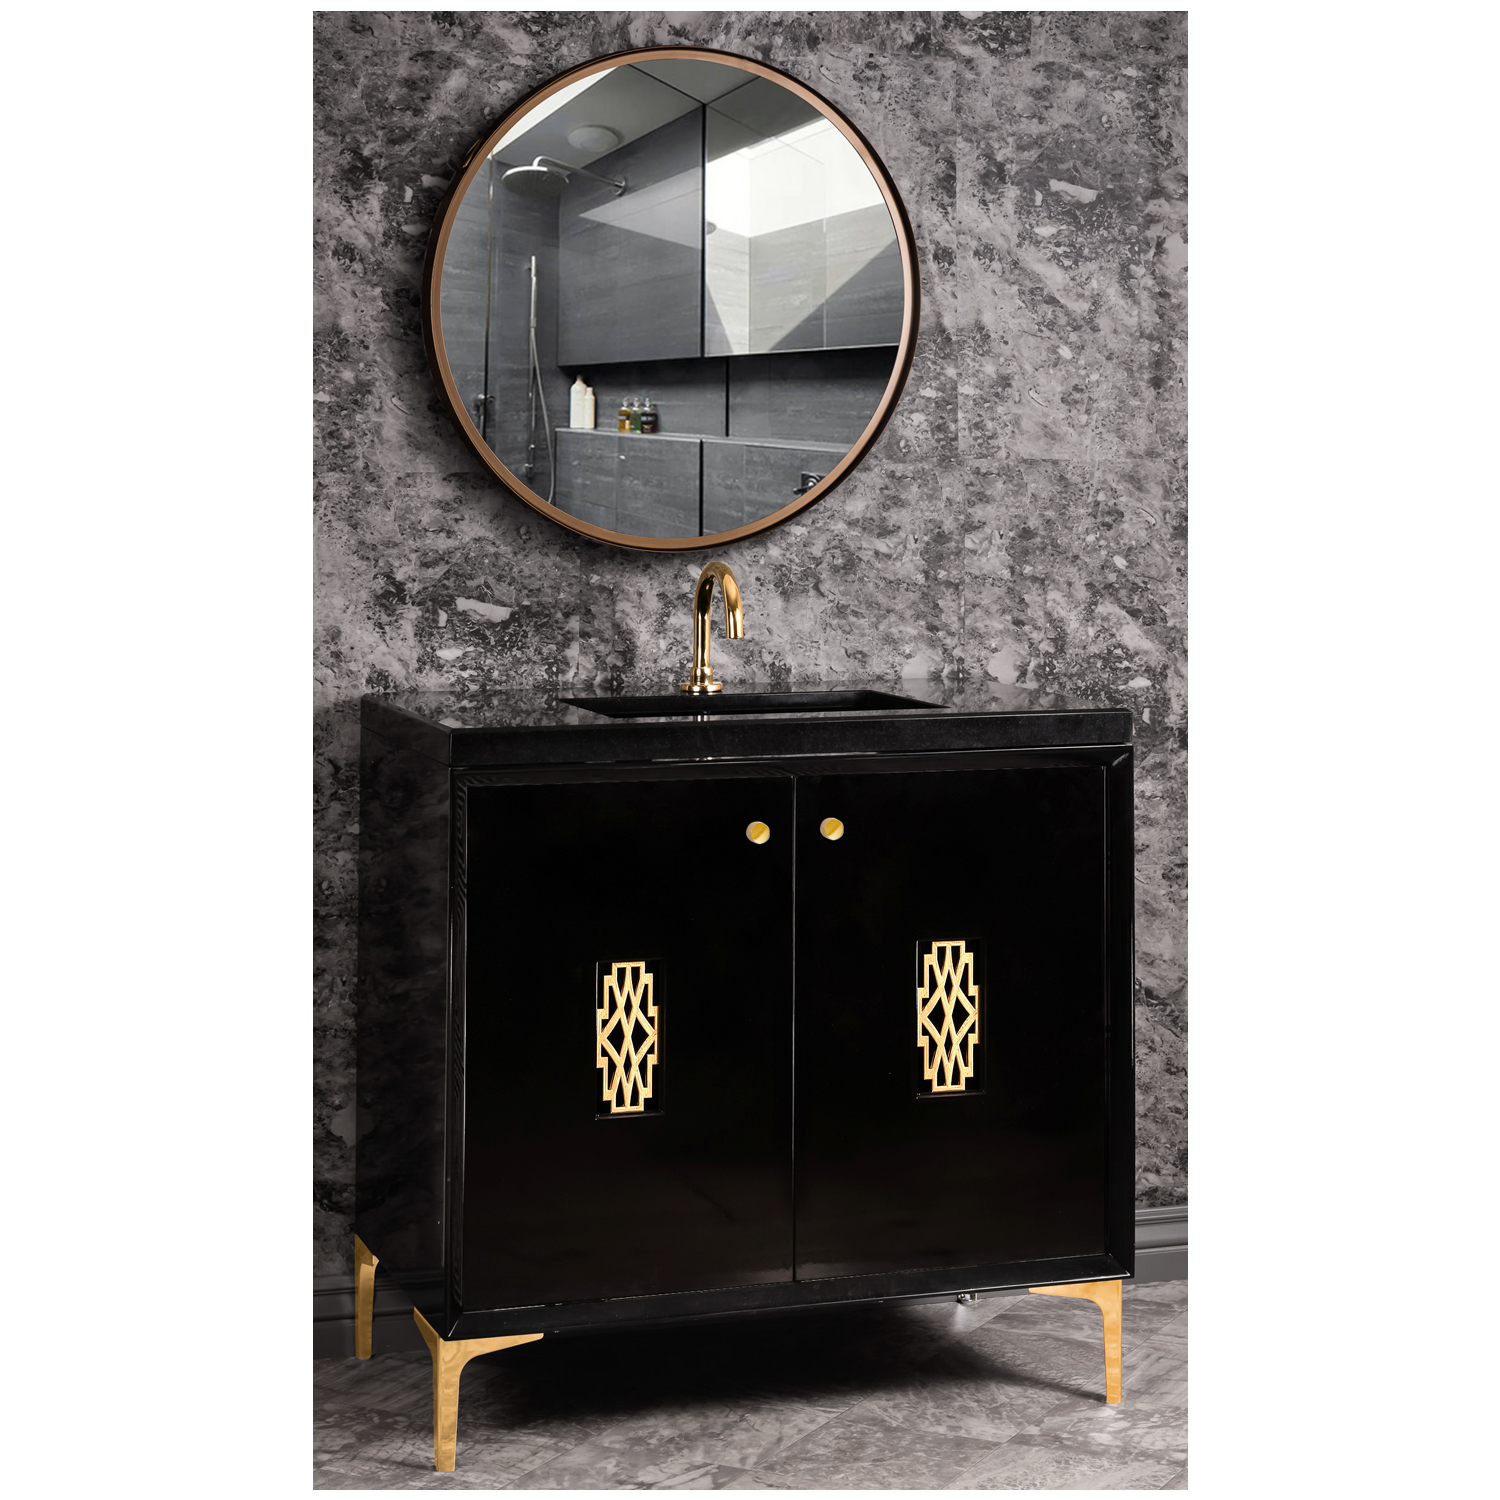 "VAN36B-0011 36"" Black Frame With Deco - Shown with PB (Polished Brass)"